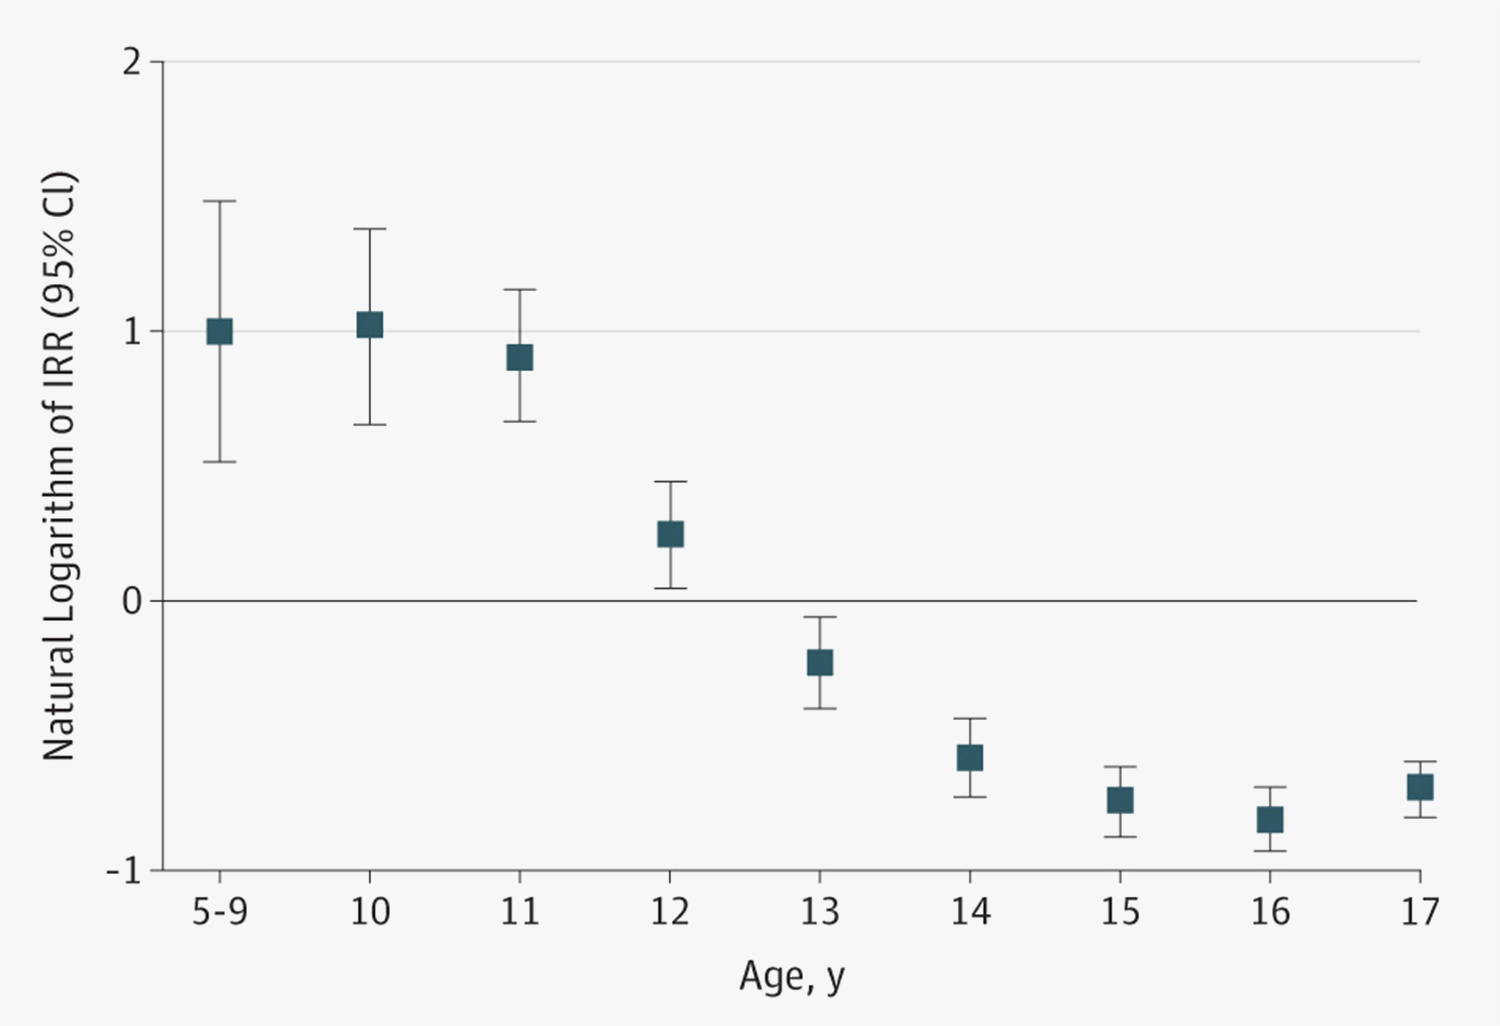 Image showing age-specific incidence rate ratios for suicide